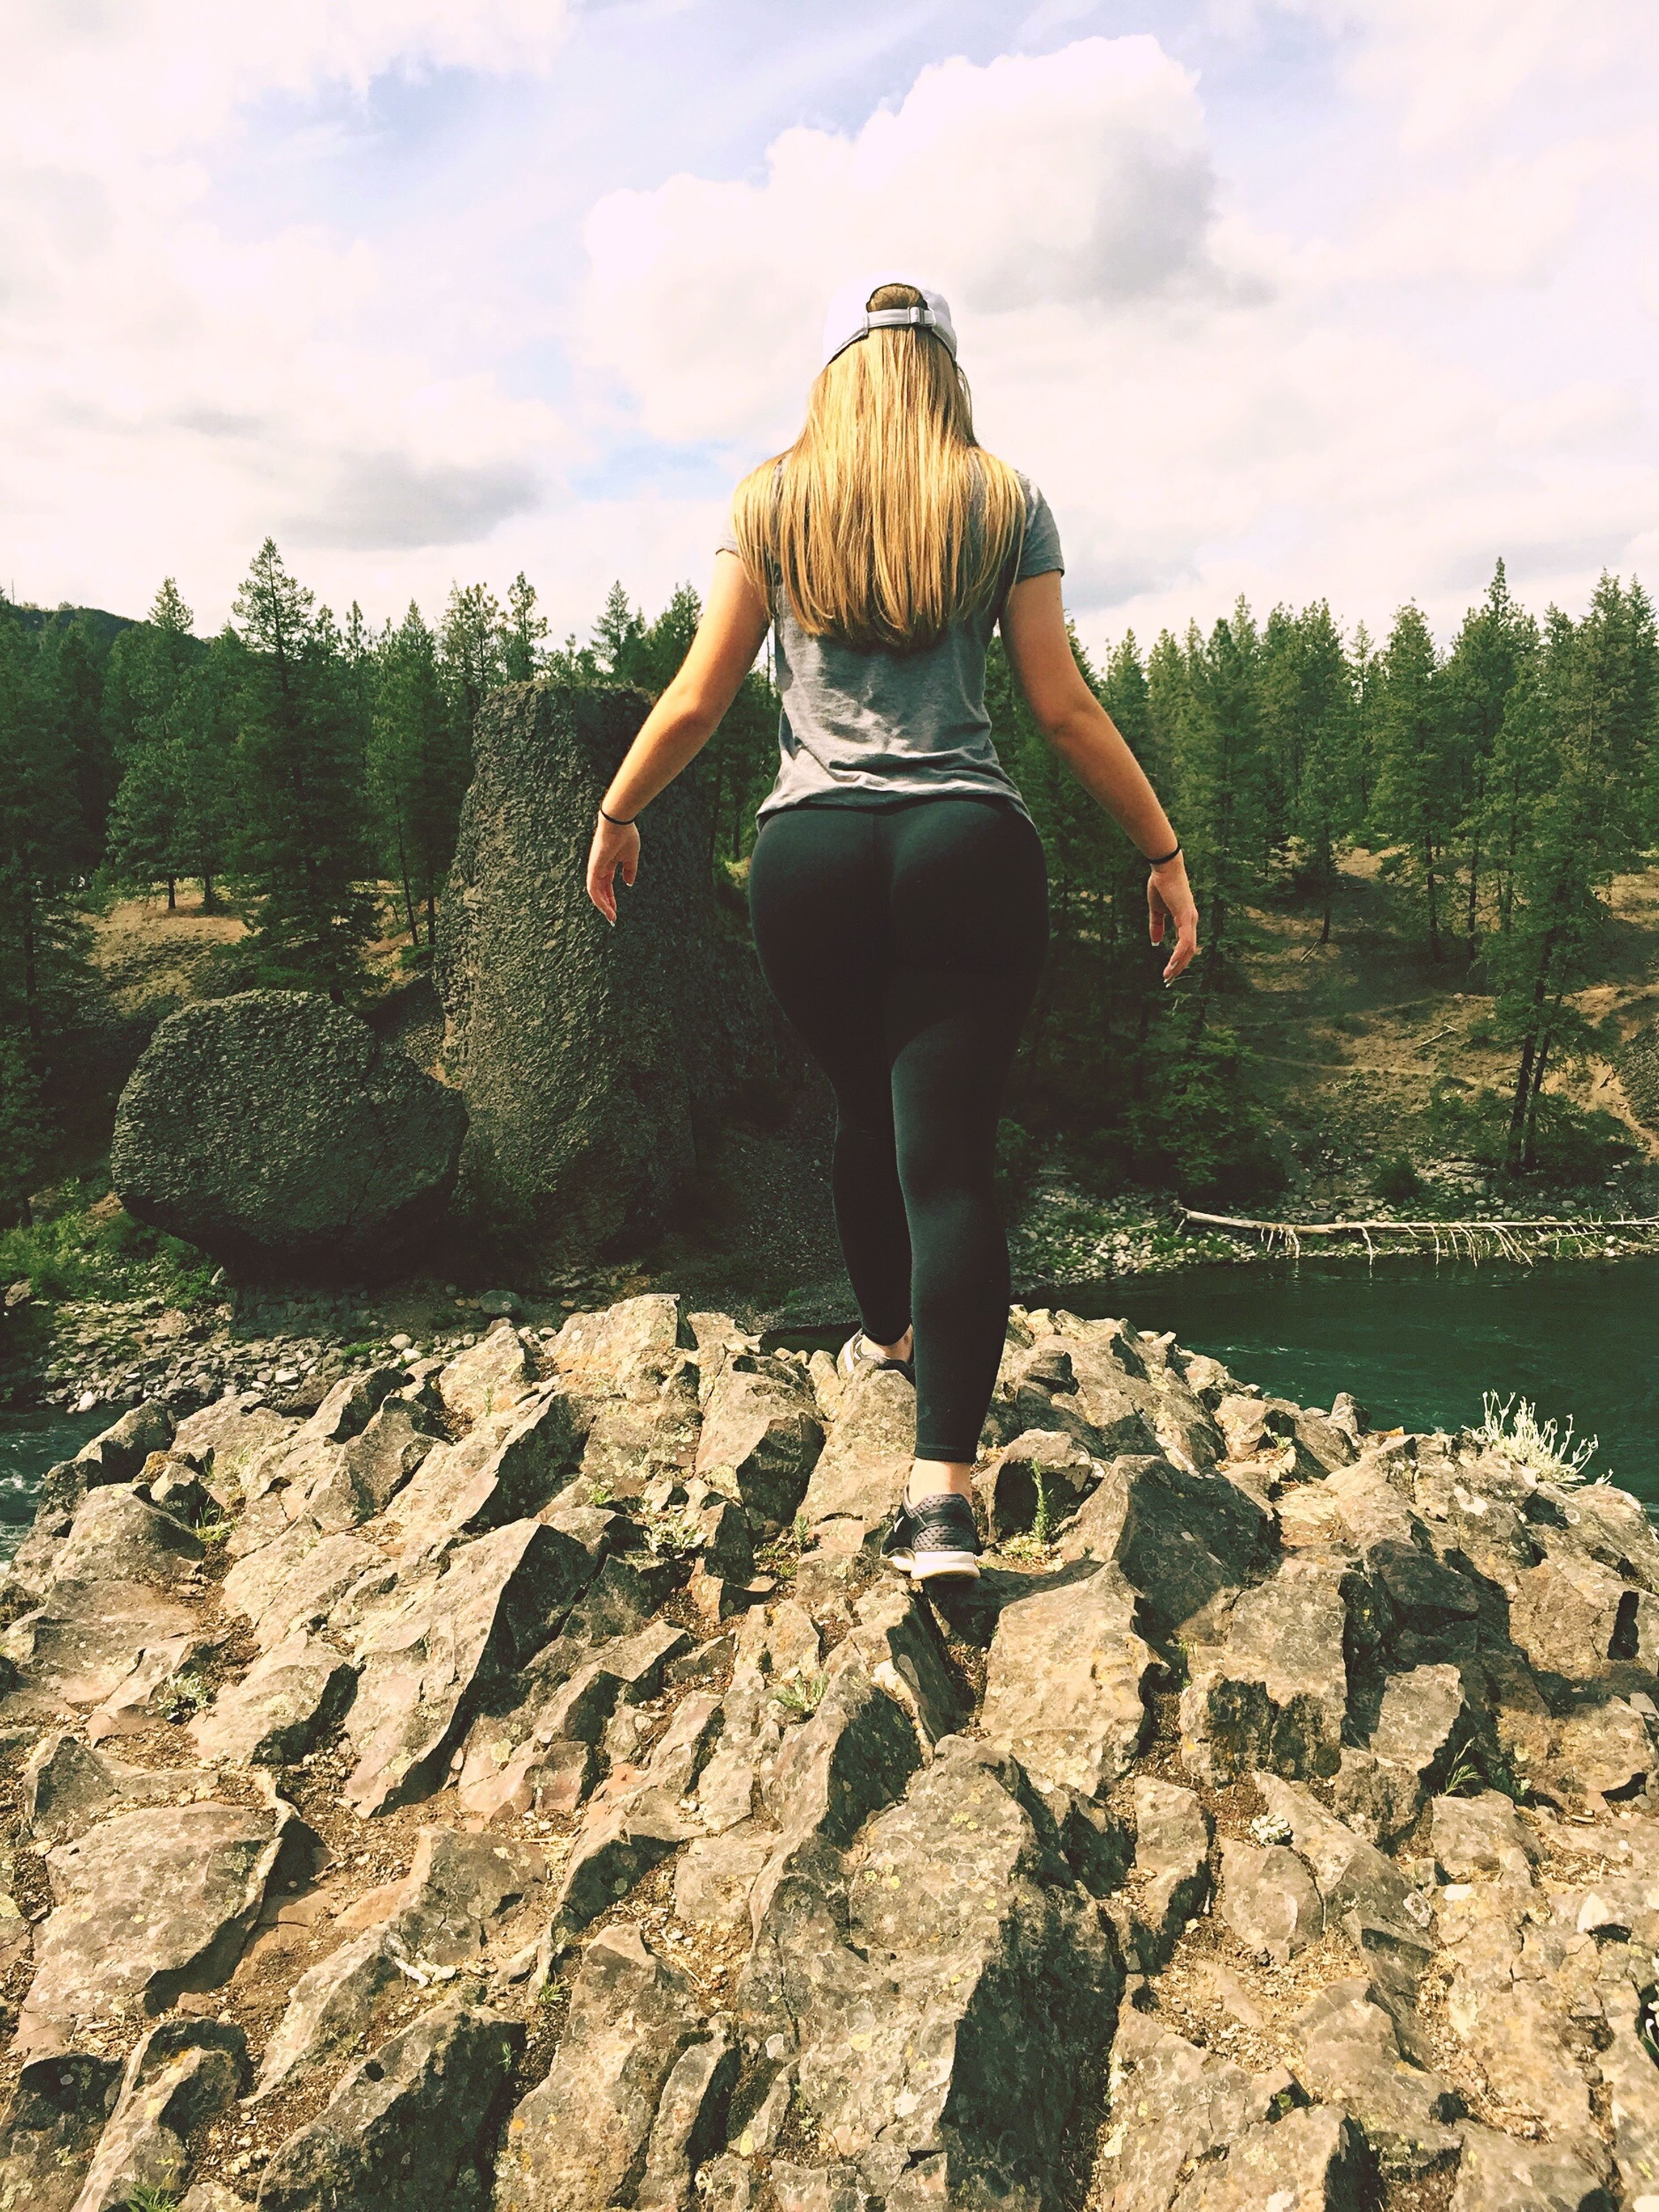 full length, sky, leisure activity, lifestyles, rear view, tranquility, tranquil scene, standing, cloud - sky, person, casual clothing, nature, scenics, beauty in nature, water, getting away from it all, tree, freedom